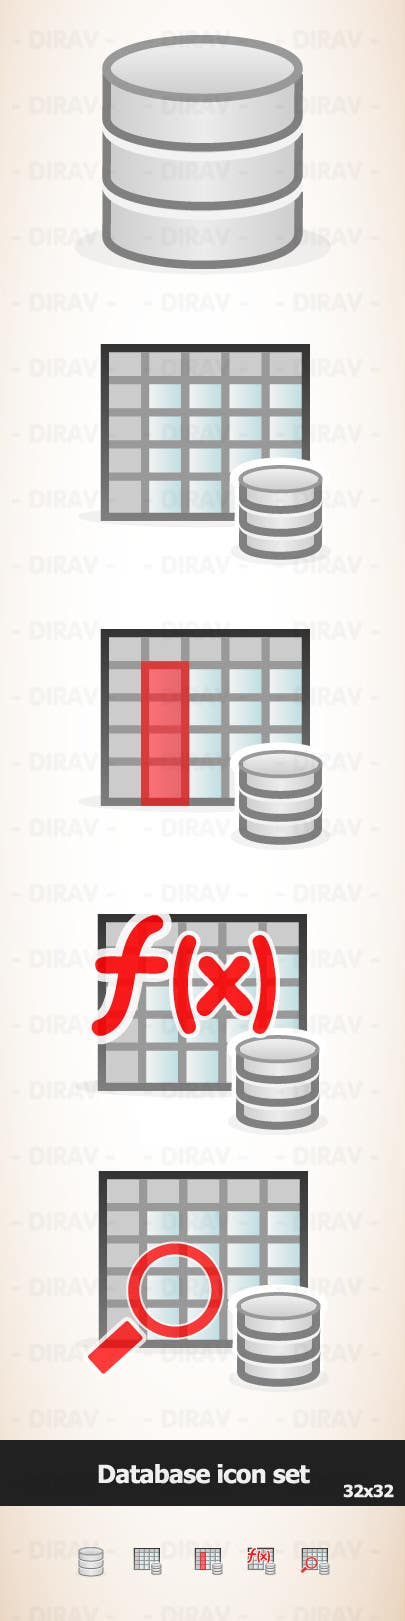 Contest Entry #13 for Design some Icons for database icon set